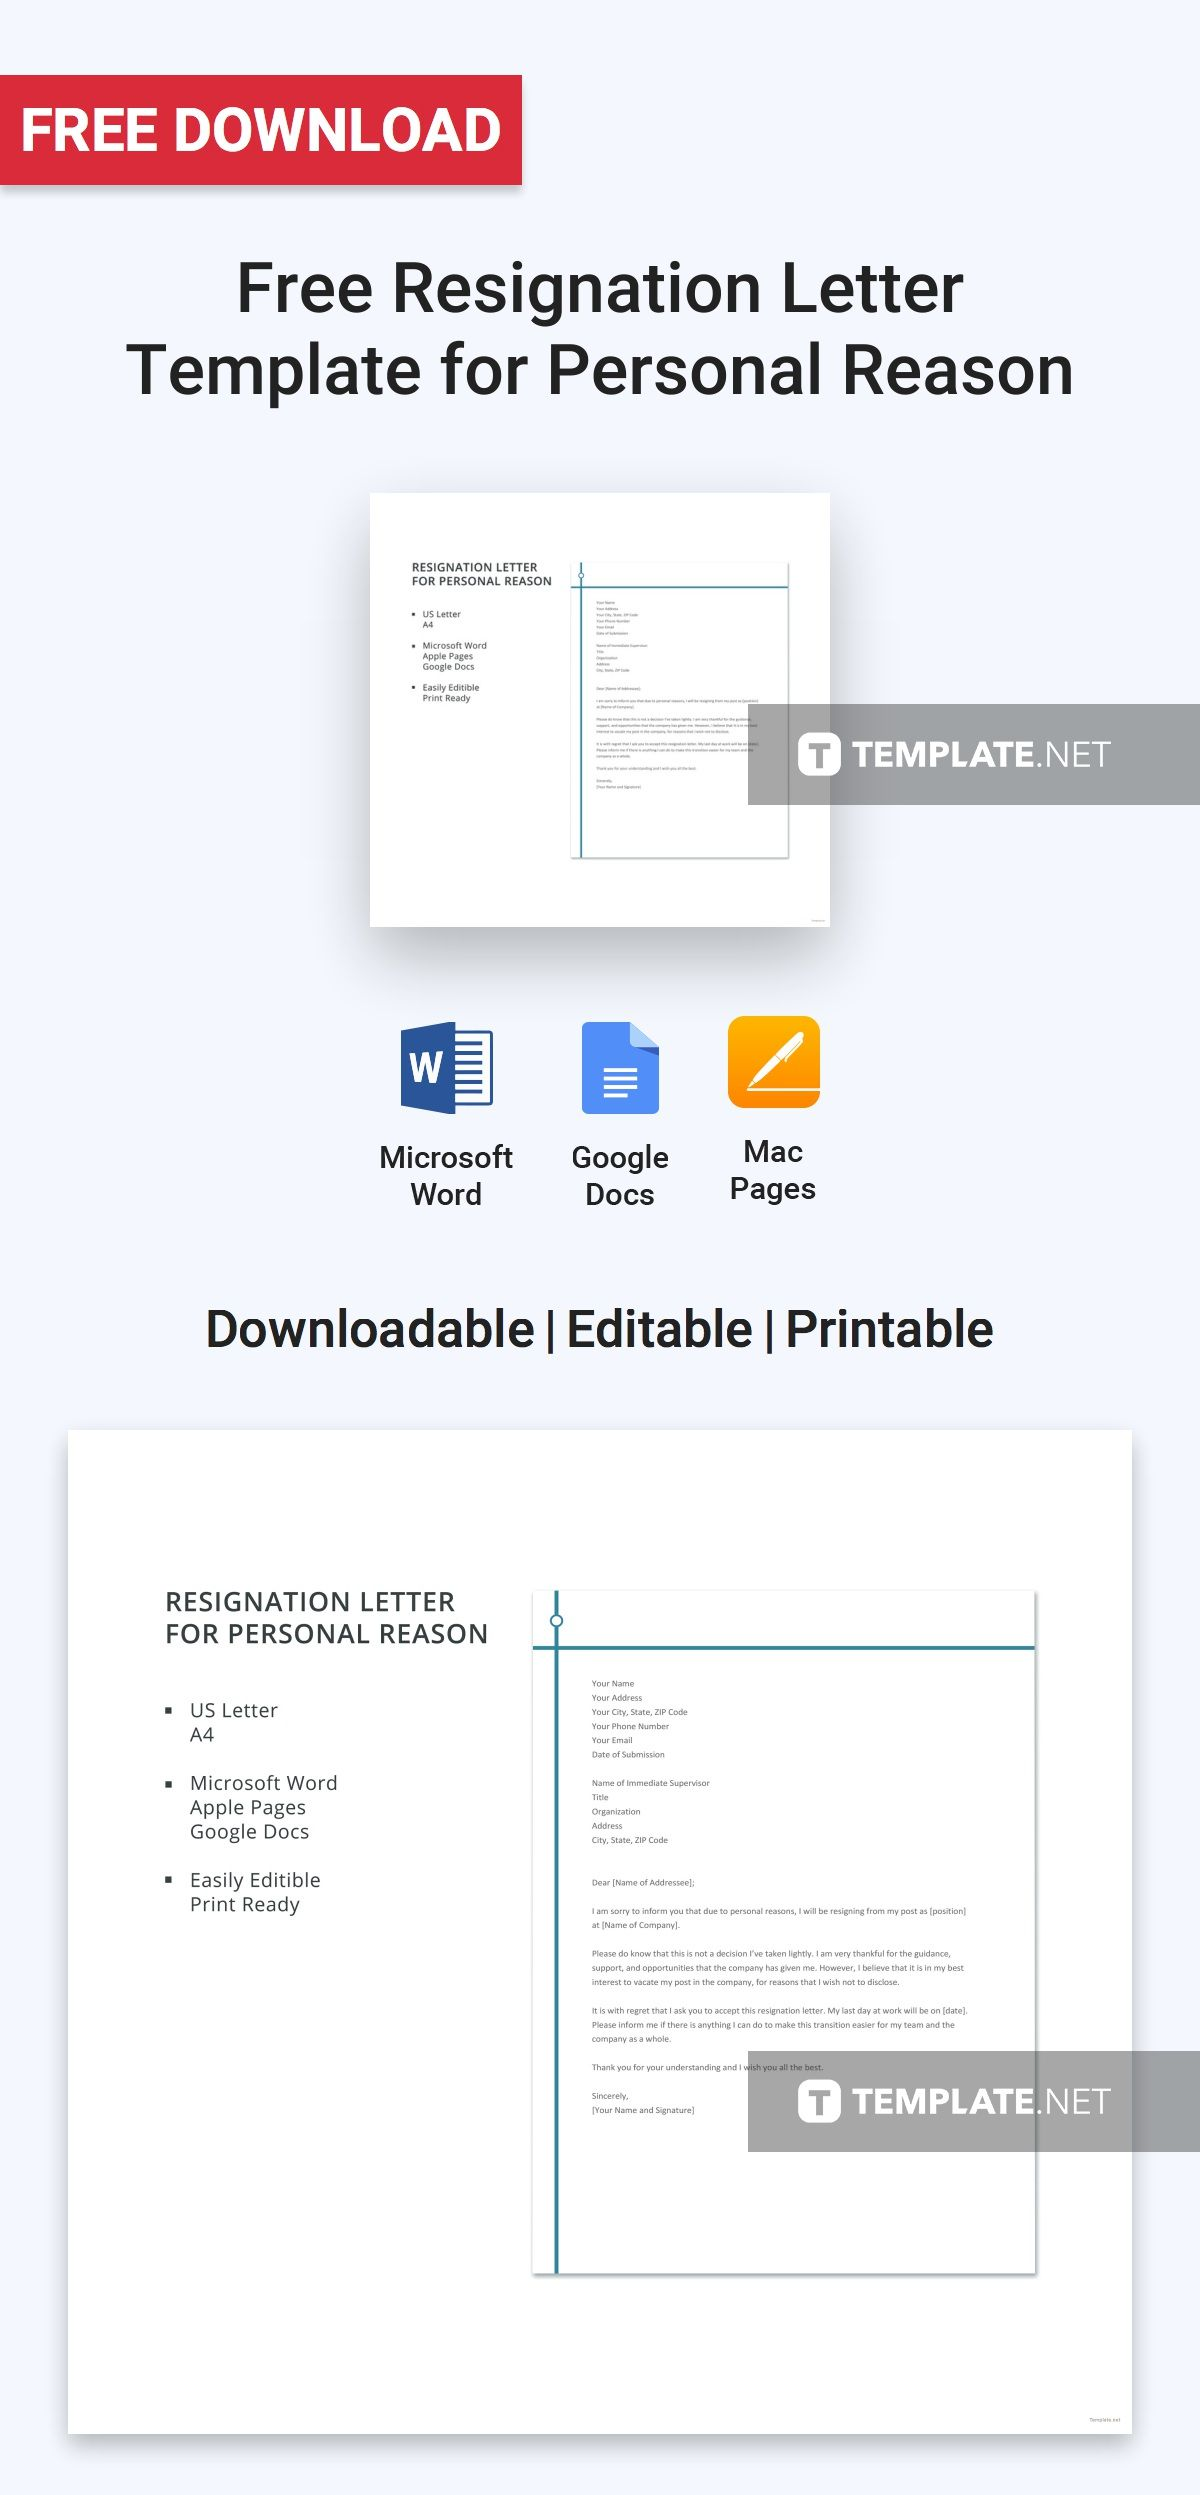 free resignation letter template for personal reason job professional summary examples java developer entry level business resume best profile cv